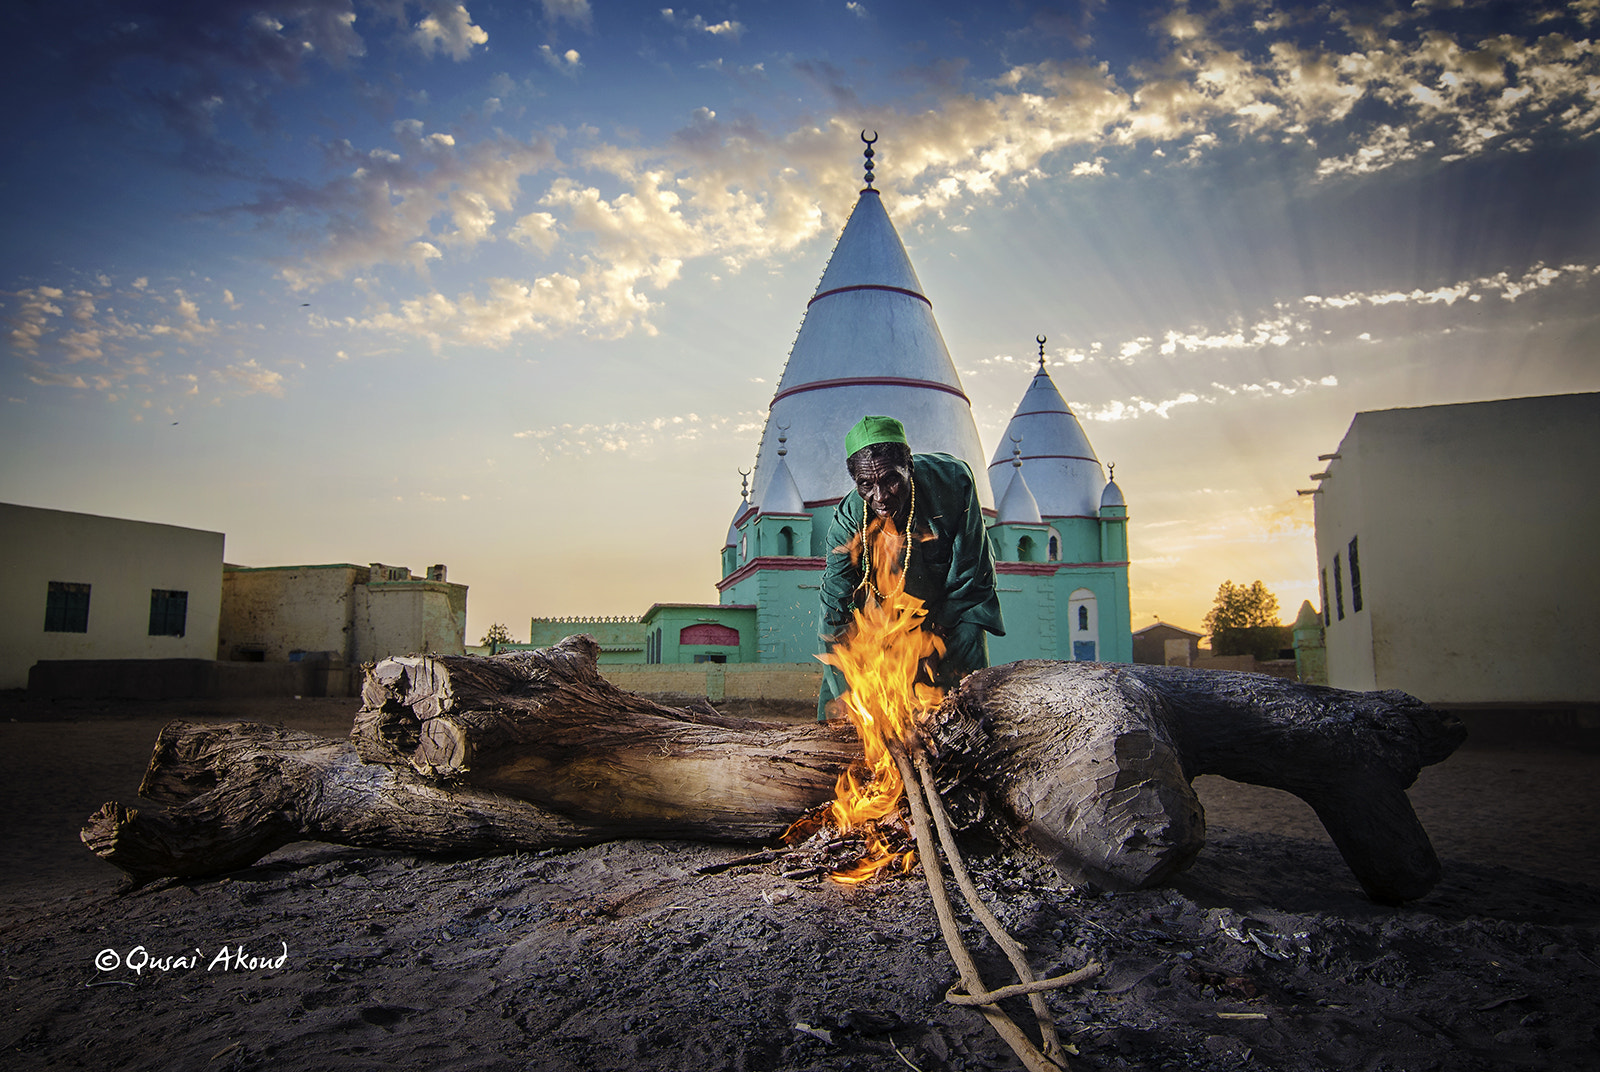 Photograph Fire of Quran by Qusai Akoud on 500px